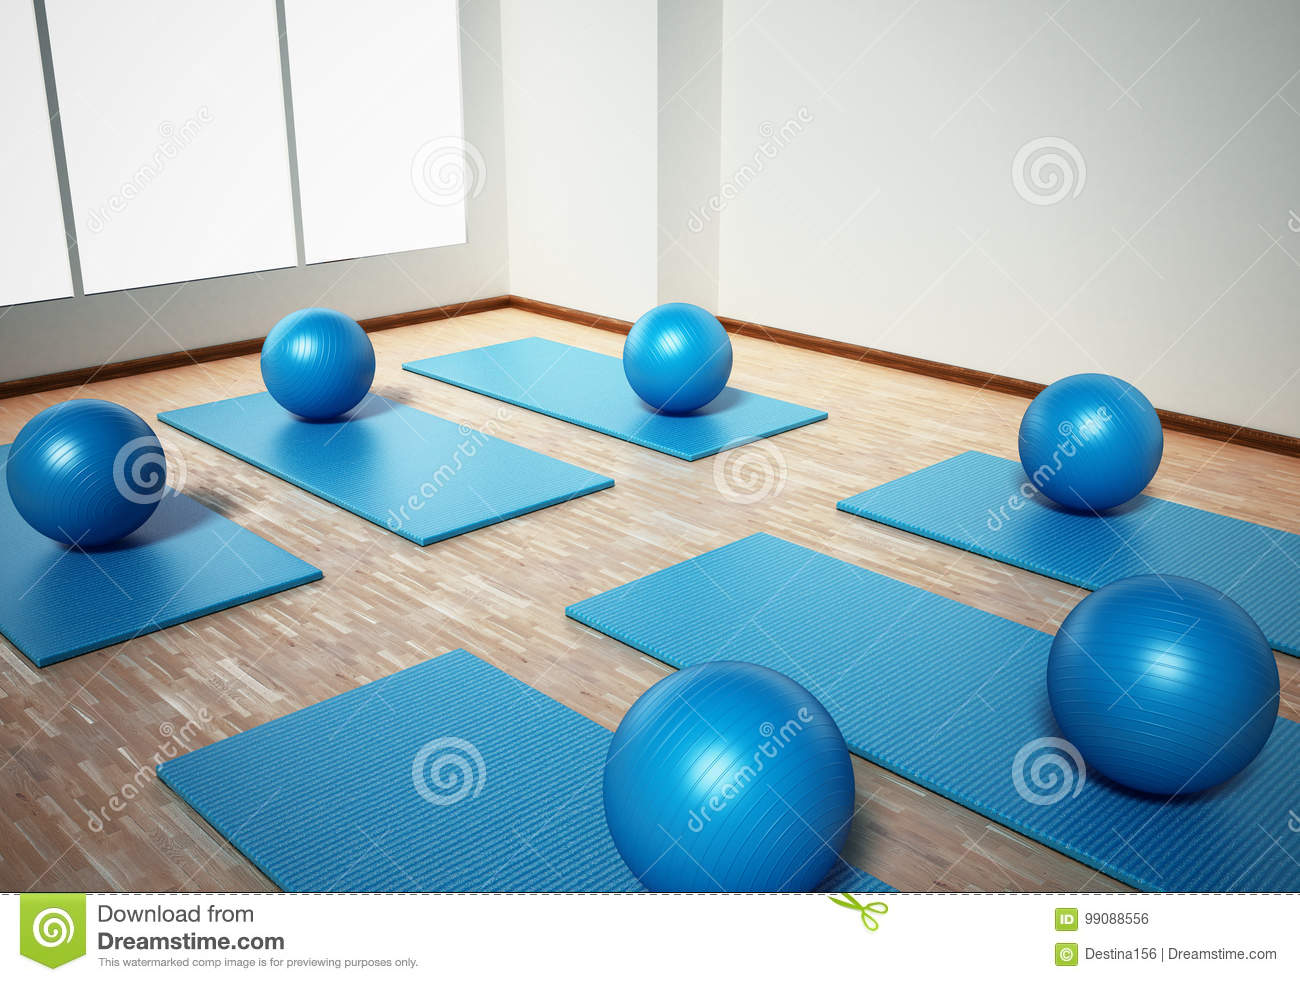 Pilates Mat And Exercise Balls Standing On Parquet Floor